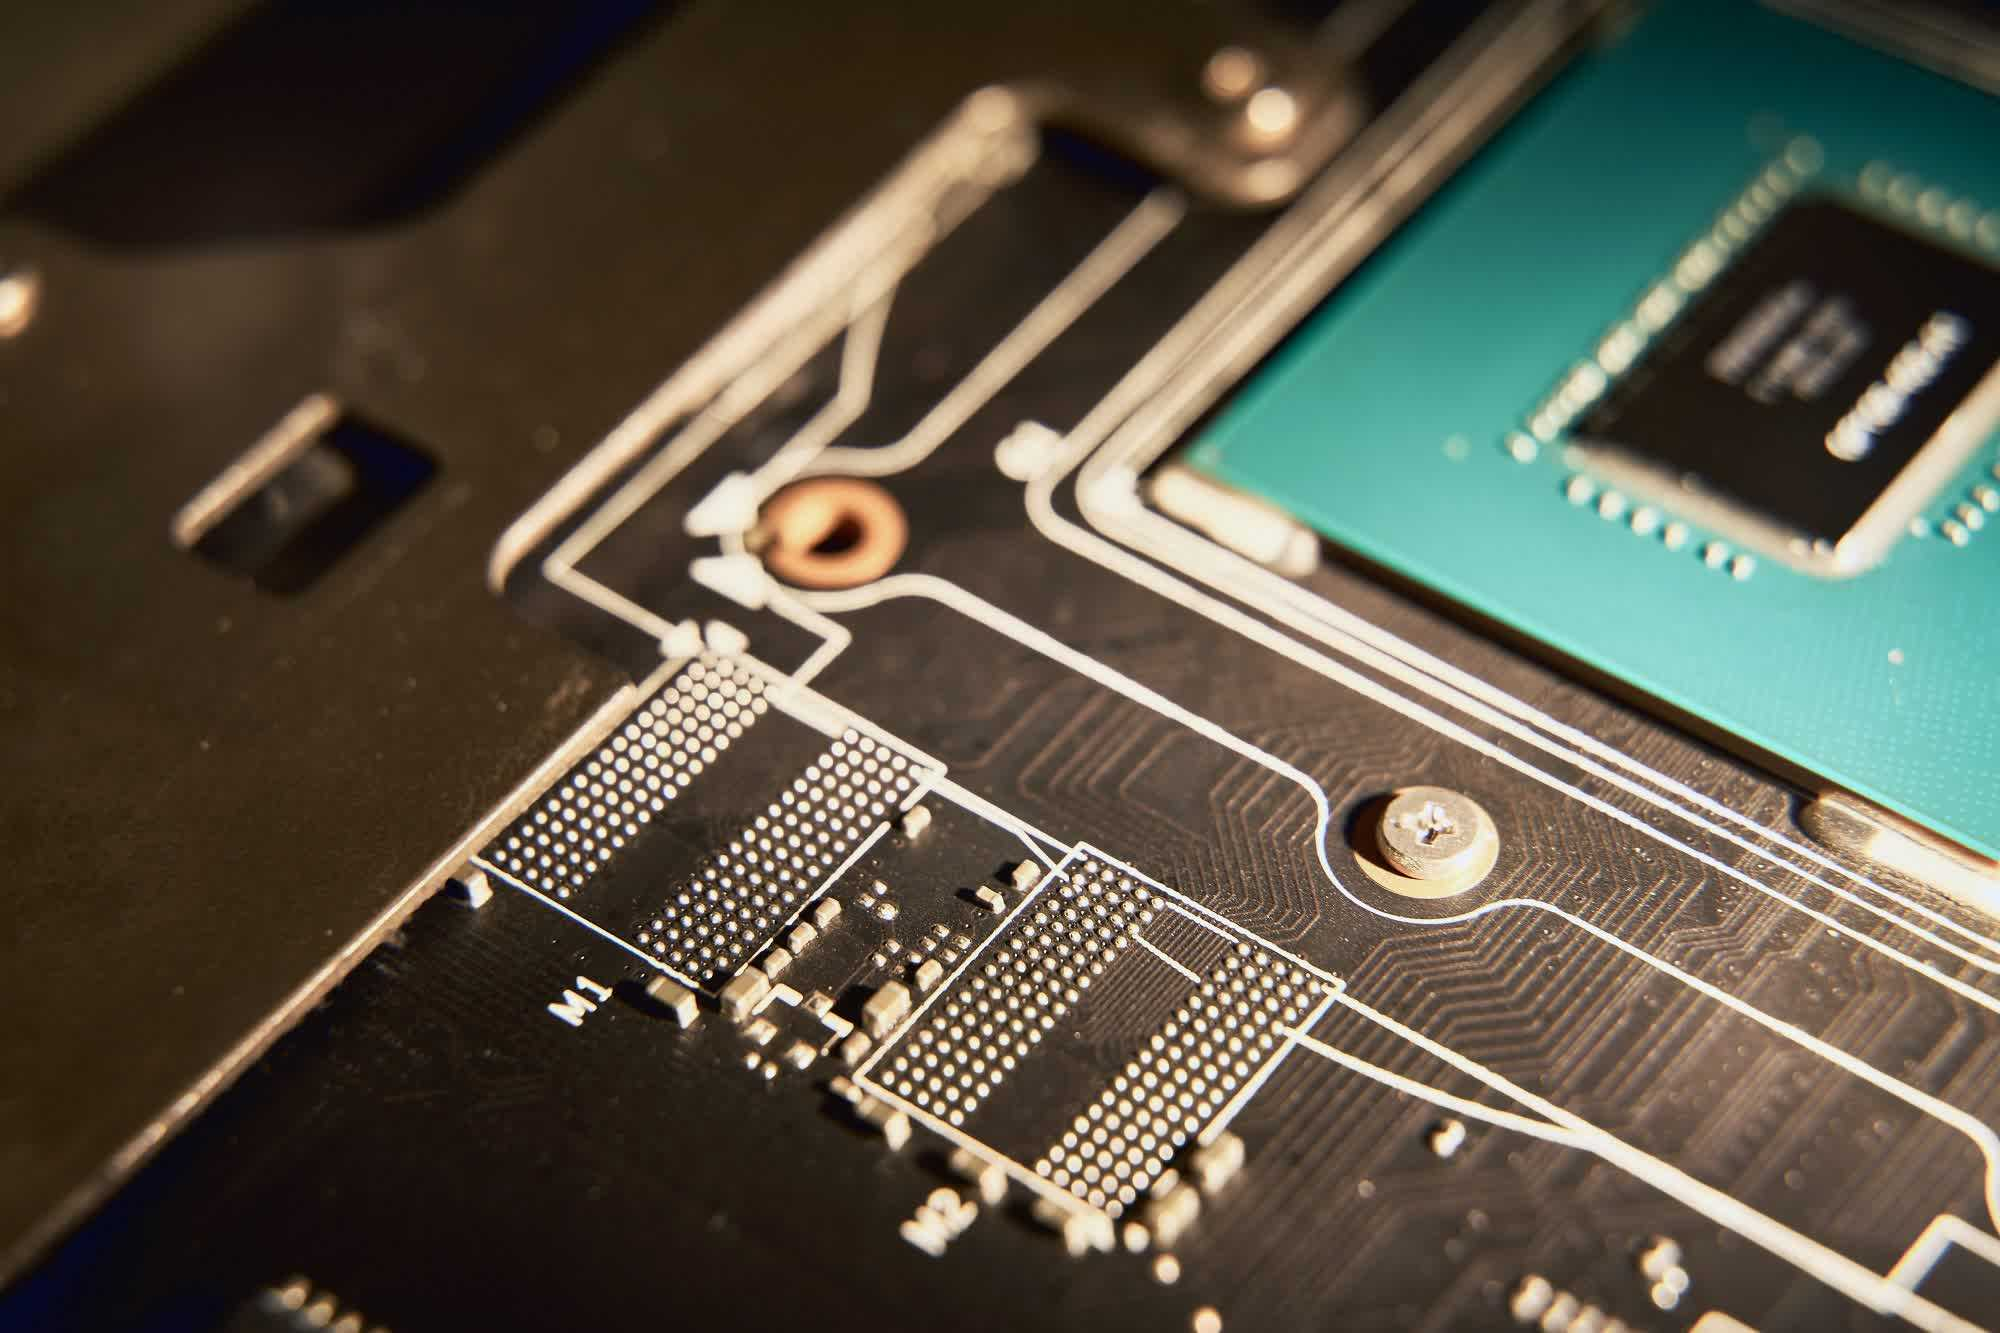 Graphics cards could get even more expensive following GDDR6 price rise